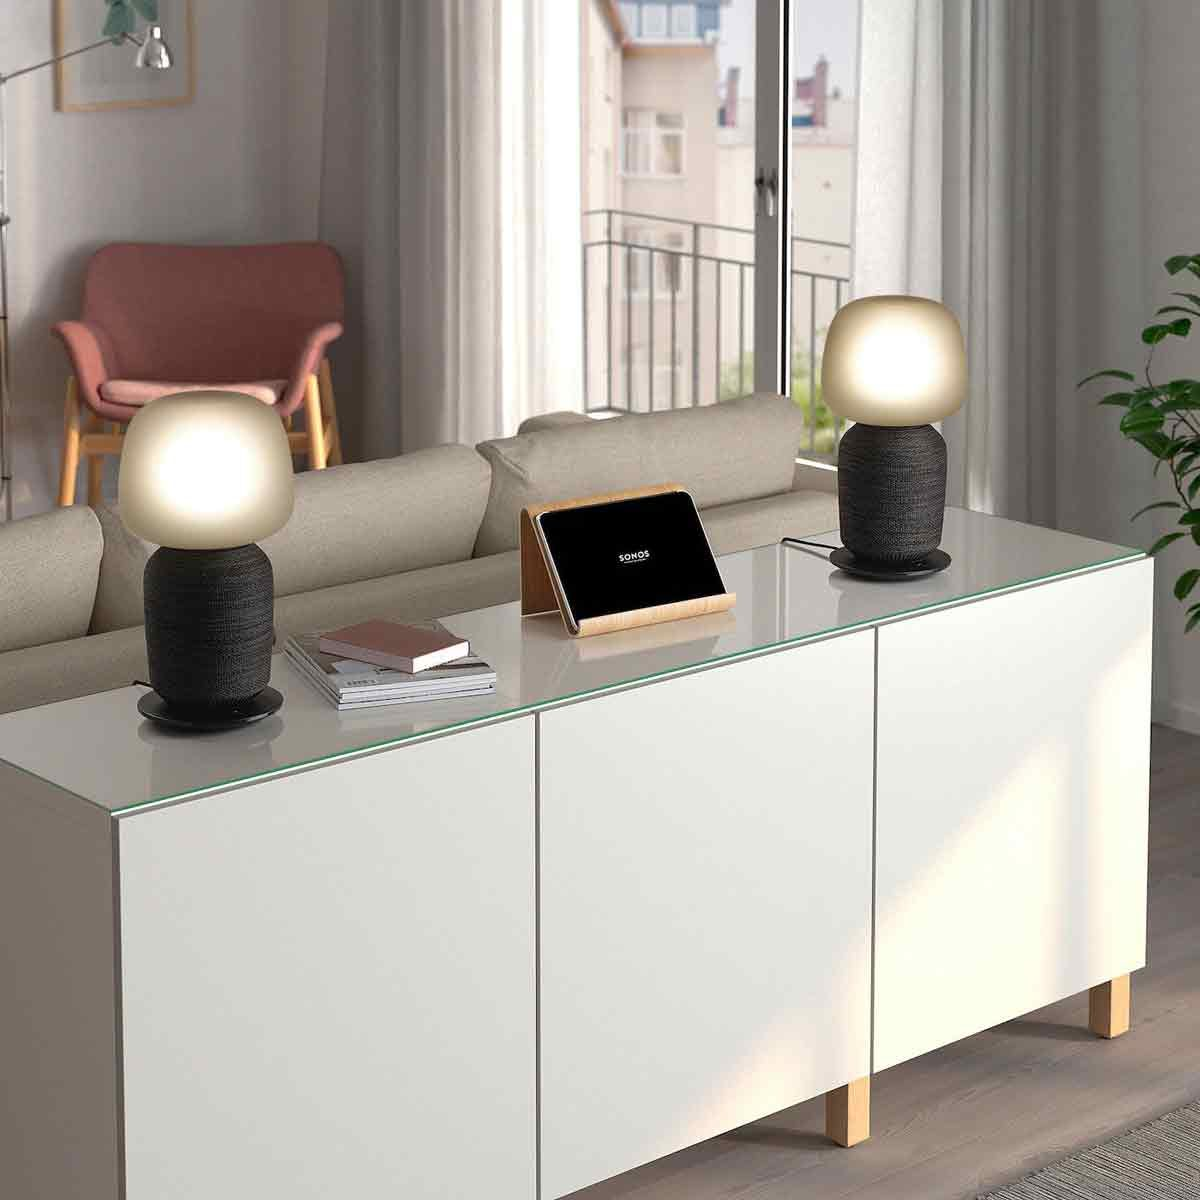 IKEA table lamp and Sonos wi-fi speaker